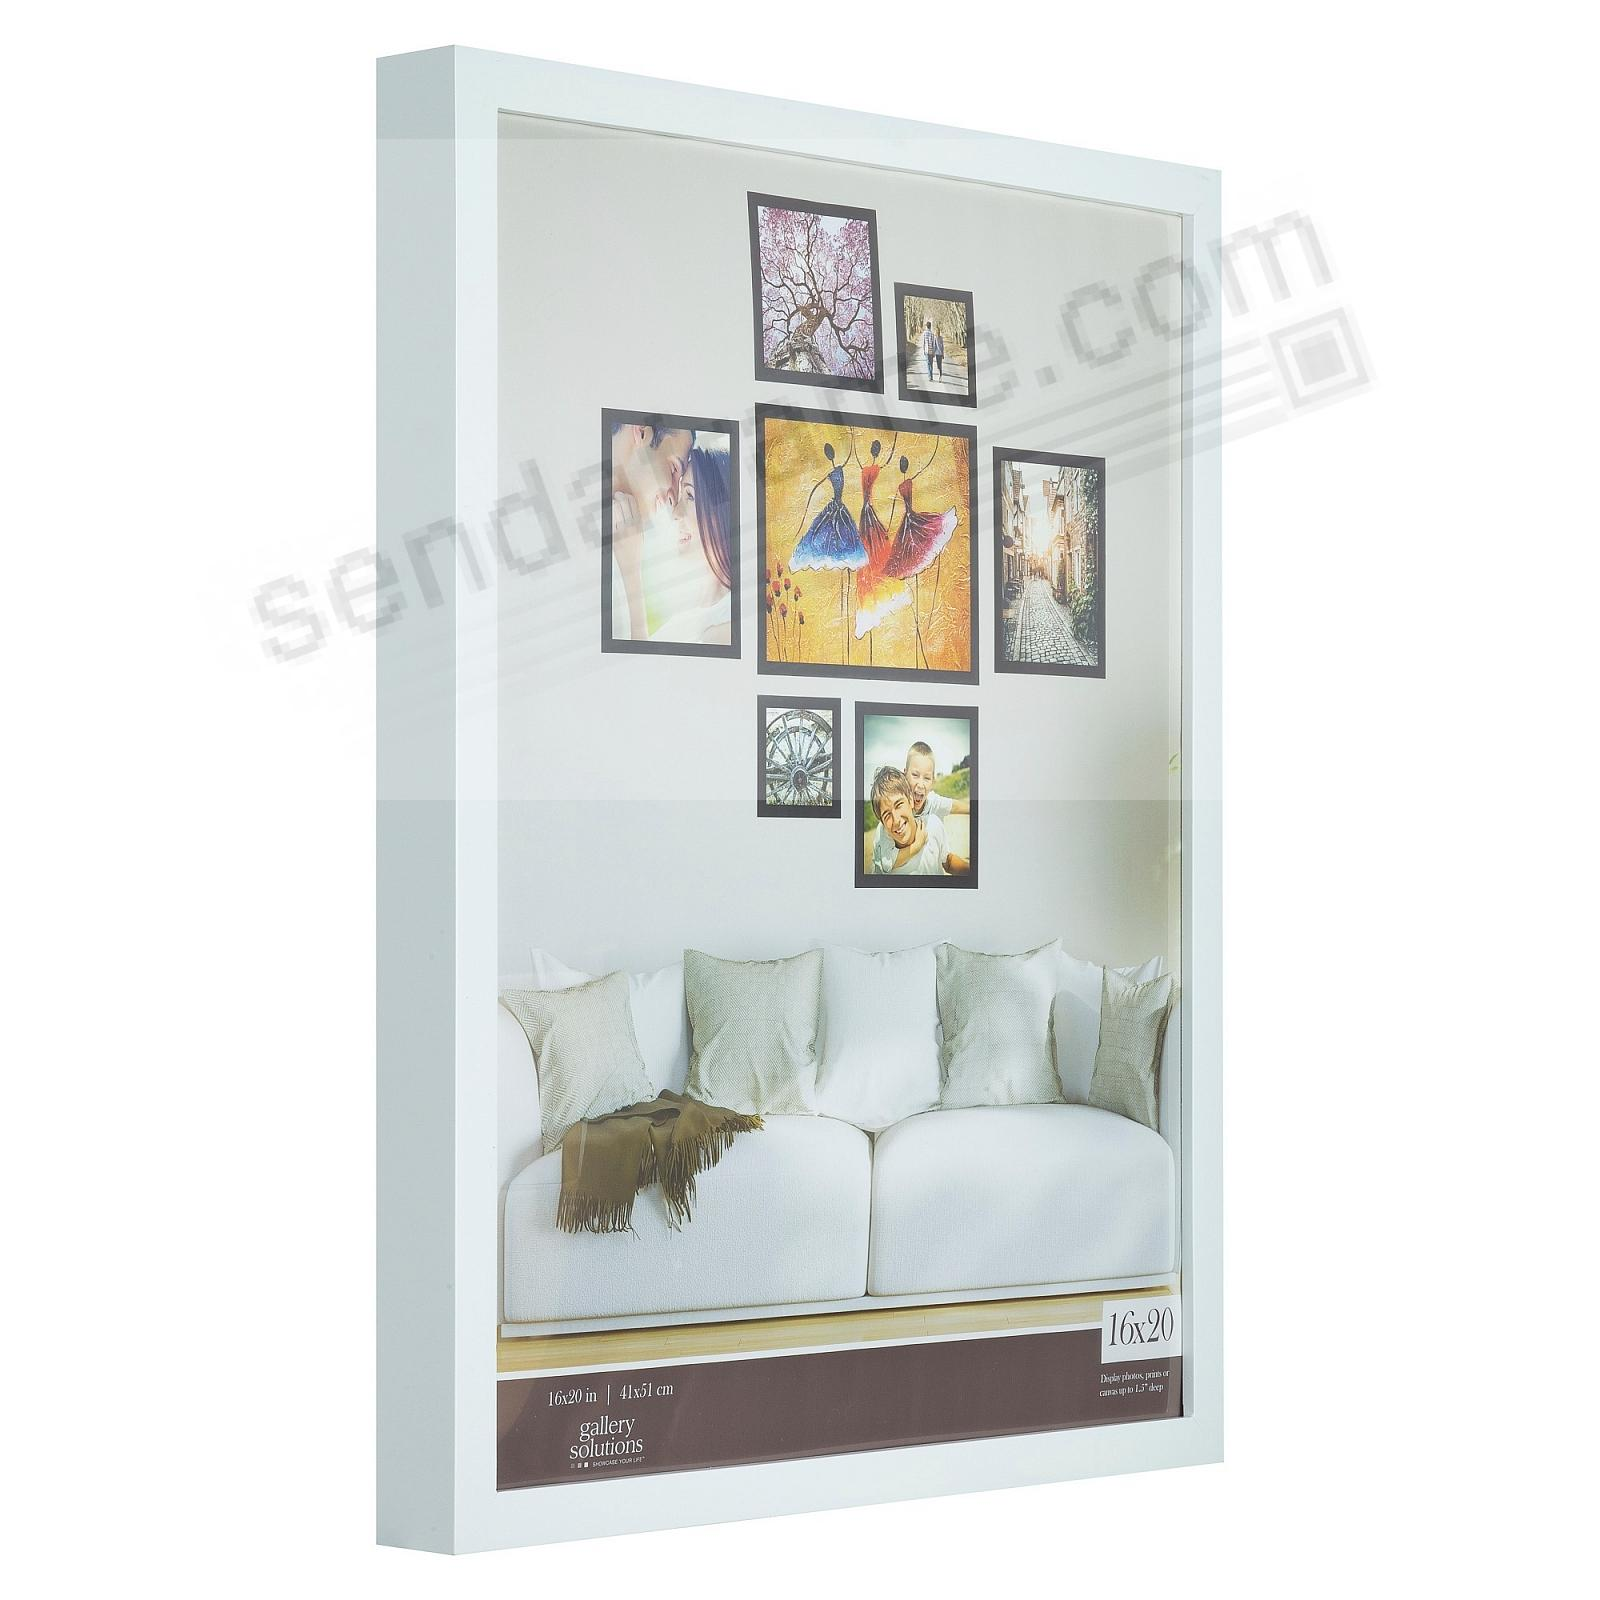 WHITE GALLERY 16x20 frame by Gallery Solutions®